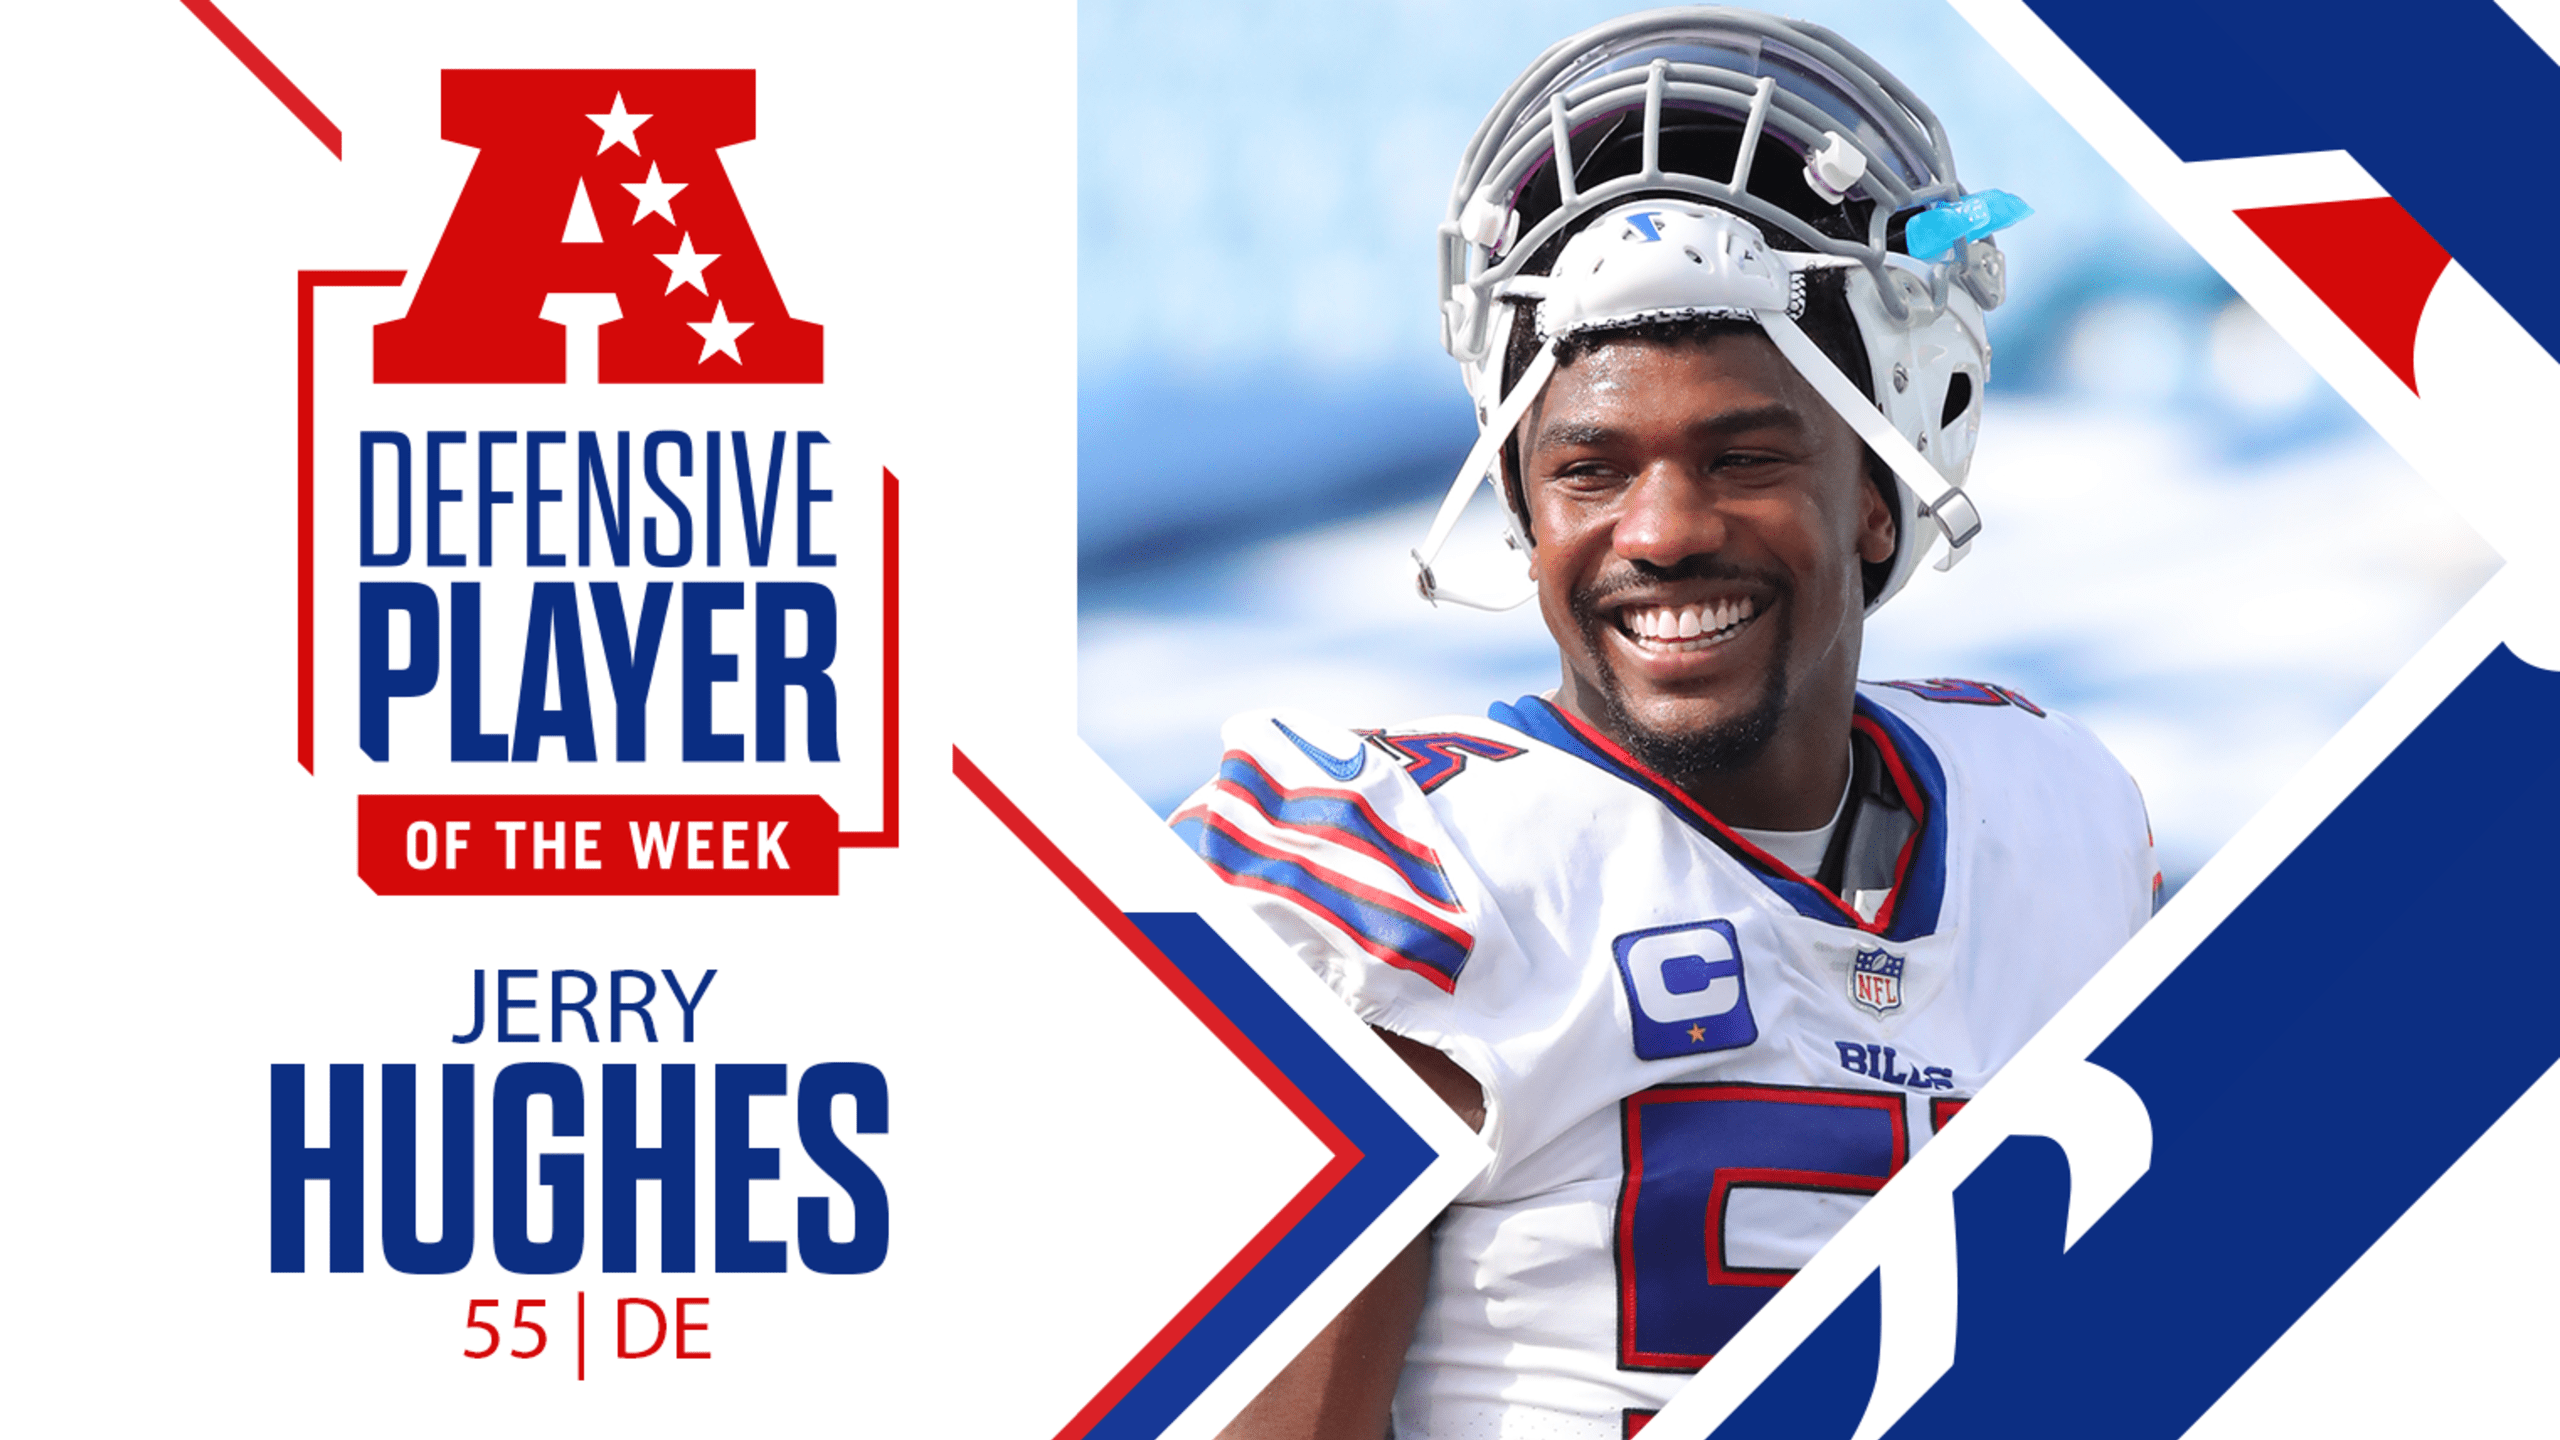 Bills DE Jerry Hughes named AFC Defensive Player of the Week for Week 7